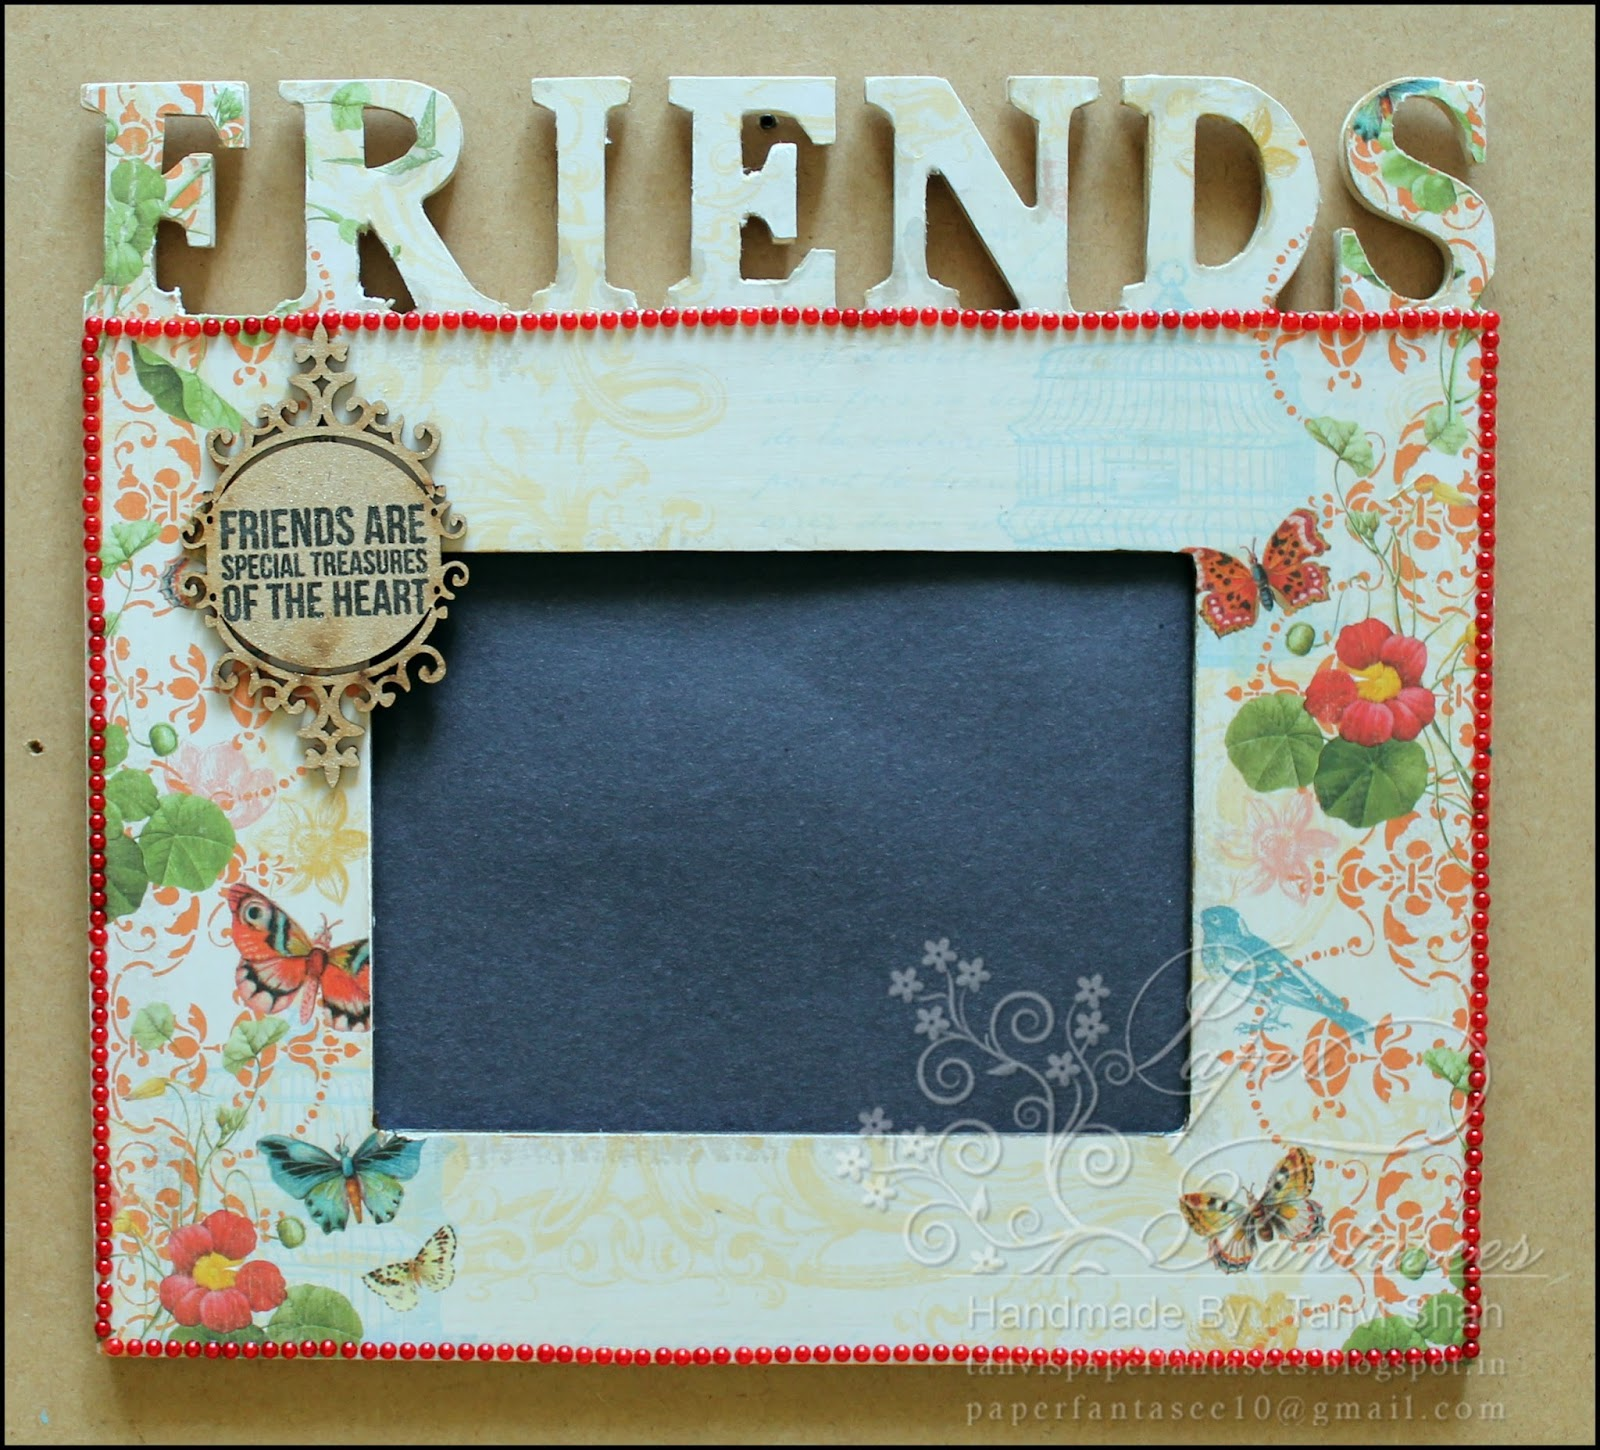 Paper fantasees the craft blog decoupage frames thank you so much for visiting taking the time to comment on my blog i love to hear from you truly appreciate your feedback have a crafty day jeuxipadfo Image collections